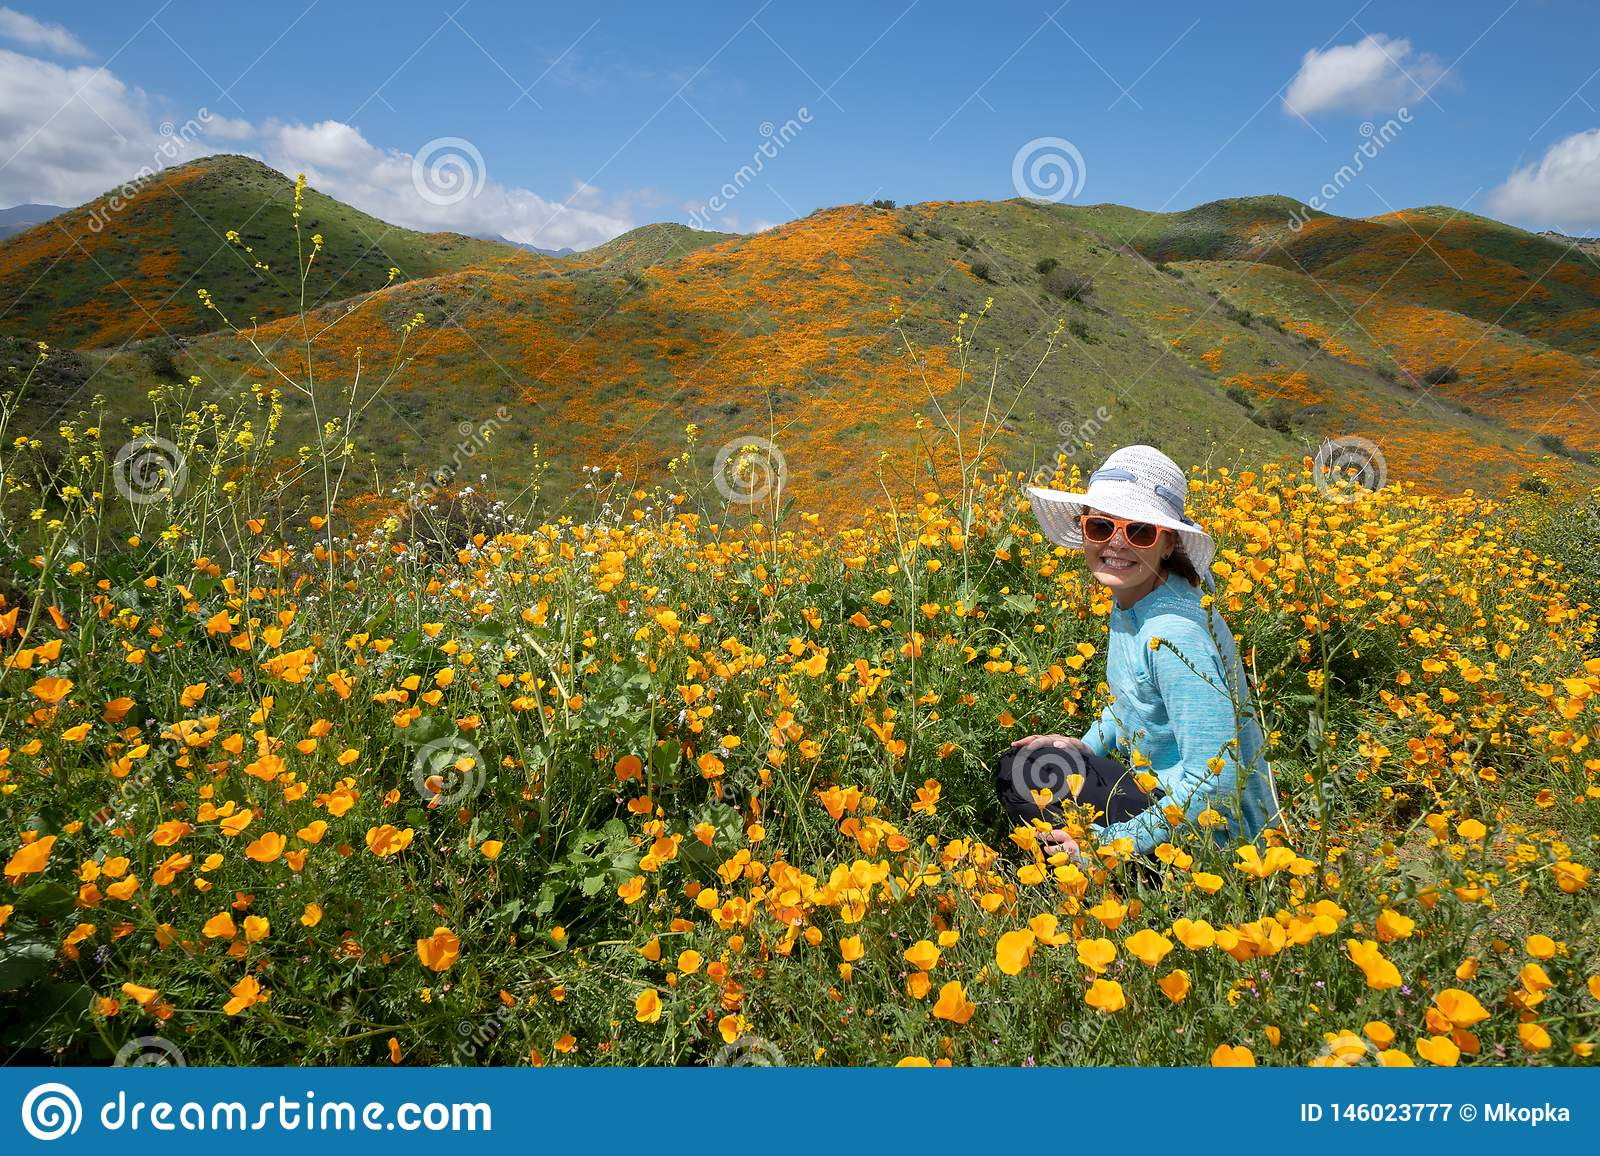 Young woman wearing sunglasses and straw hat poses in poppy field in California